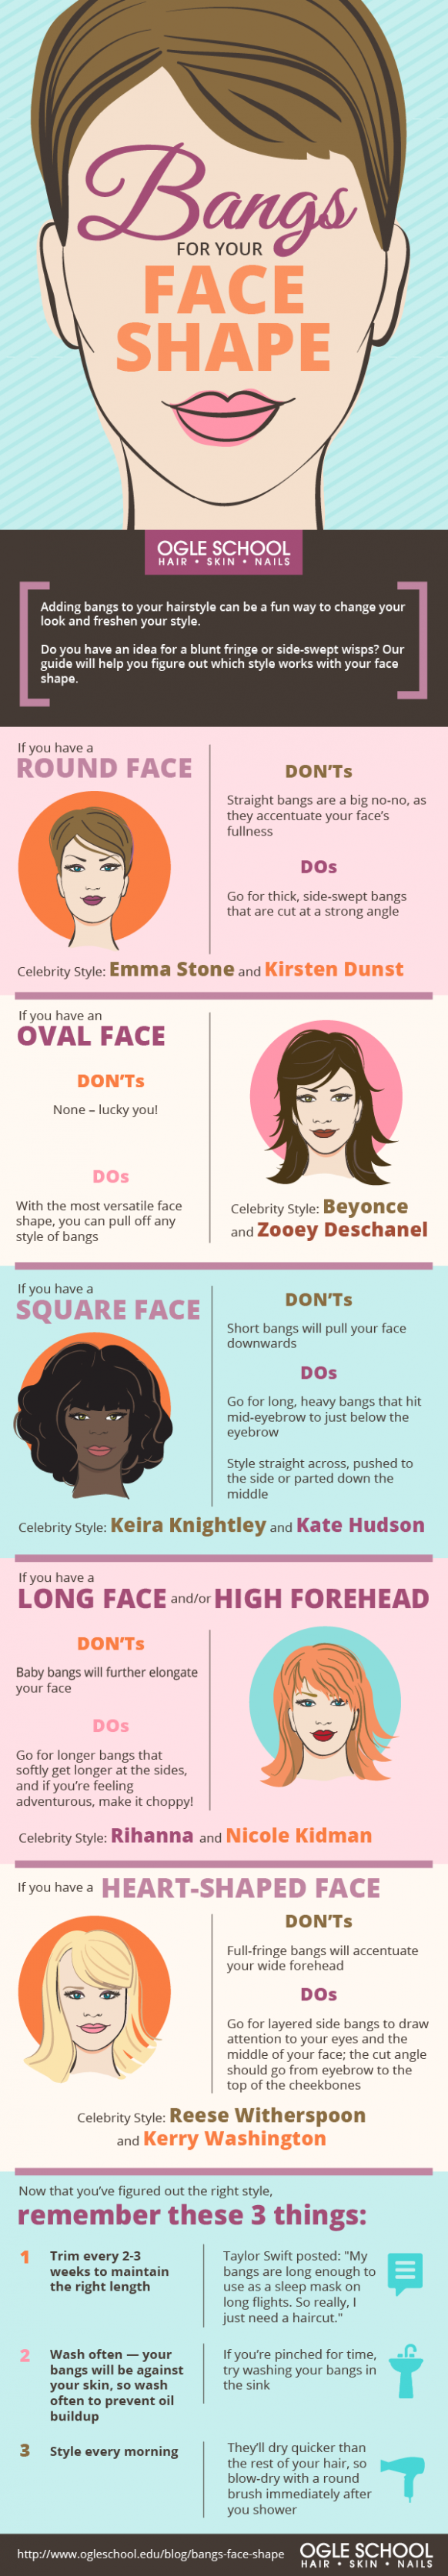 How To Choose The Right Bangs For Your Face Shape Baby Bangs Round Face